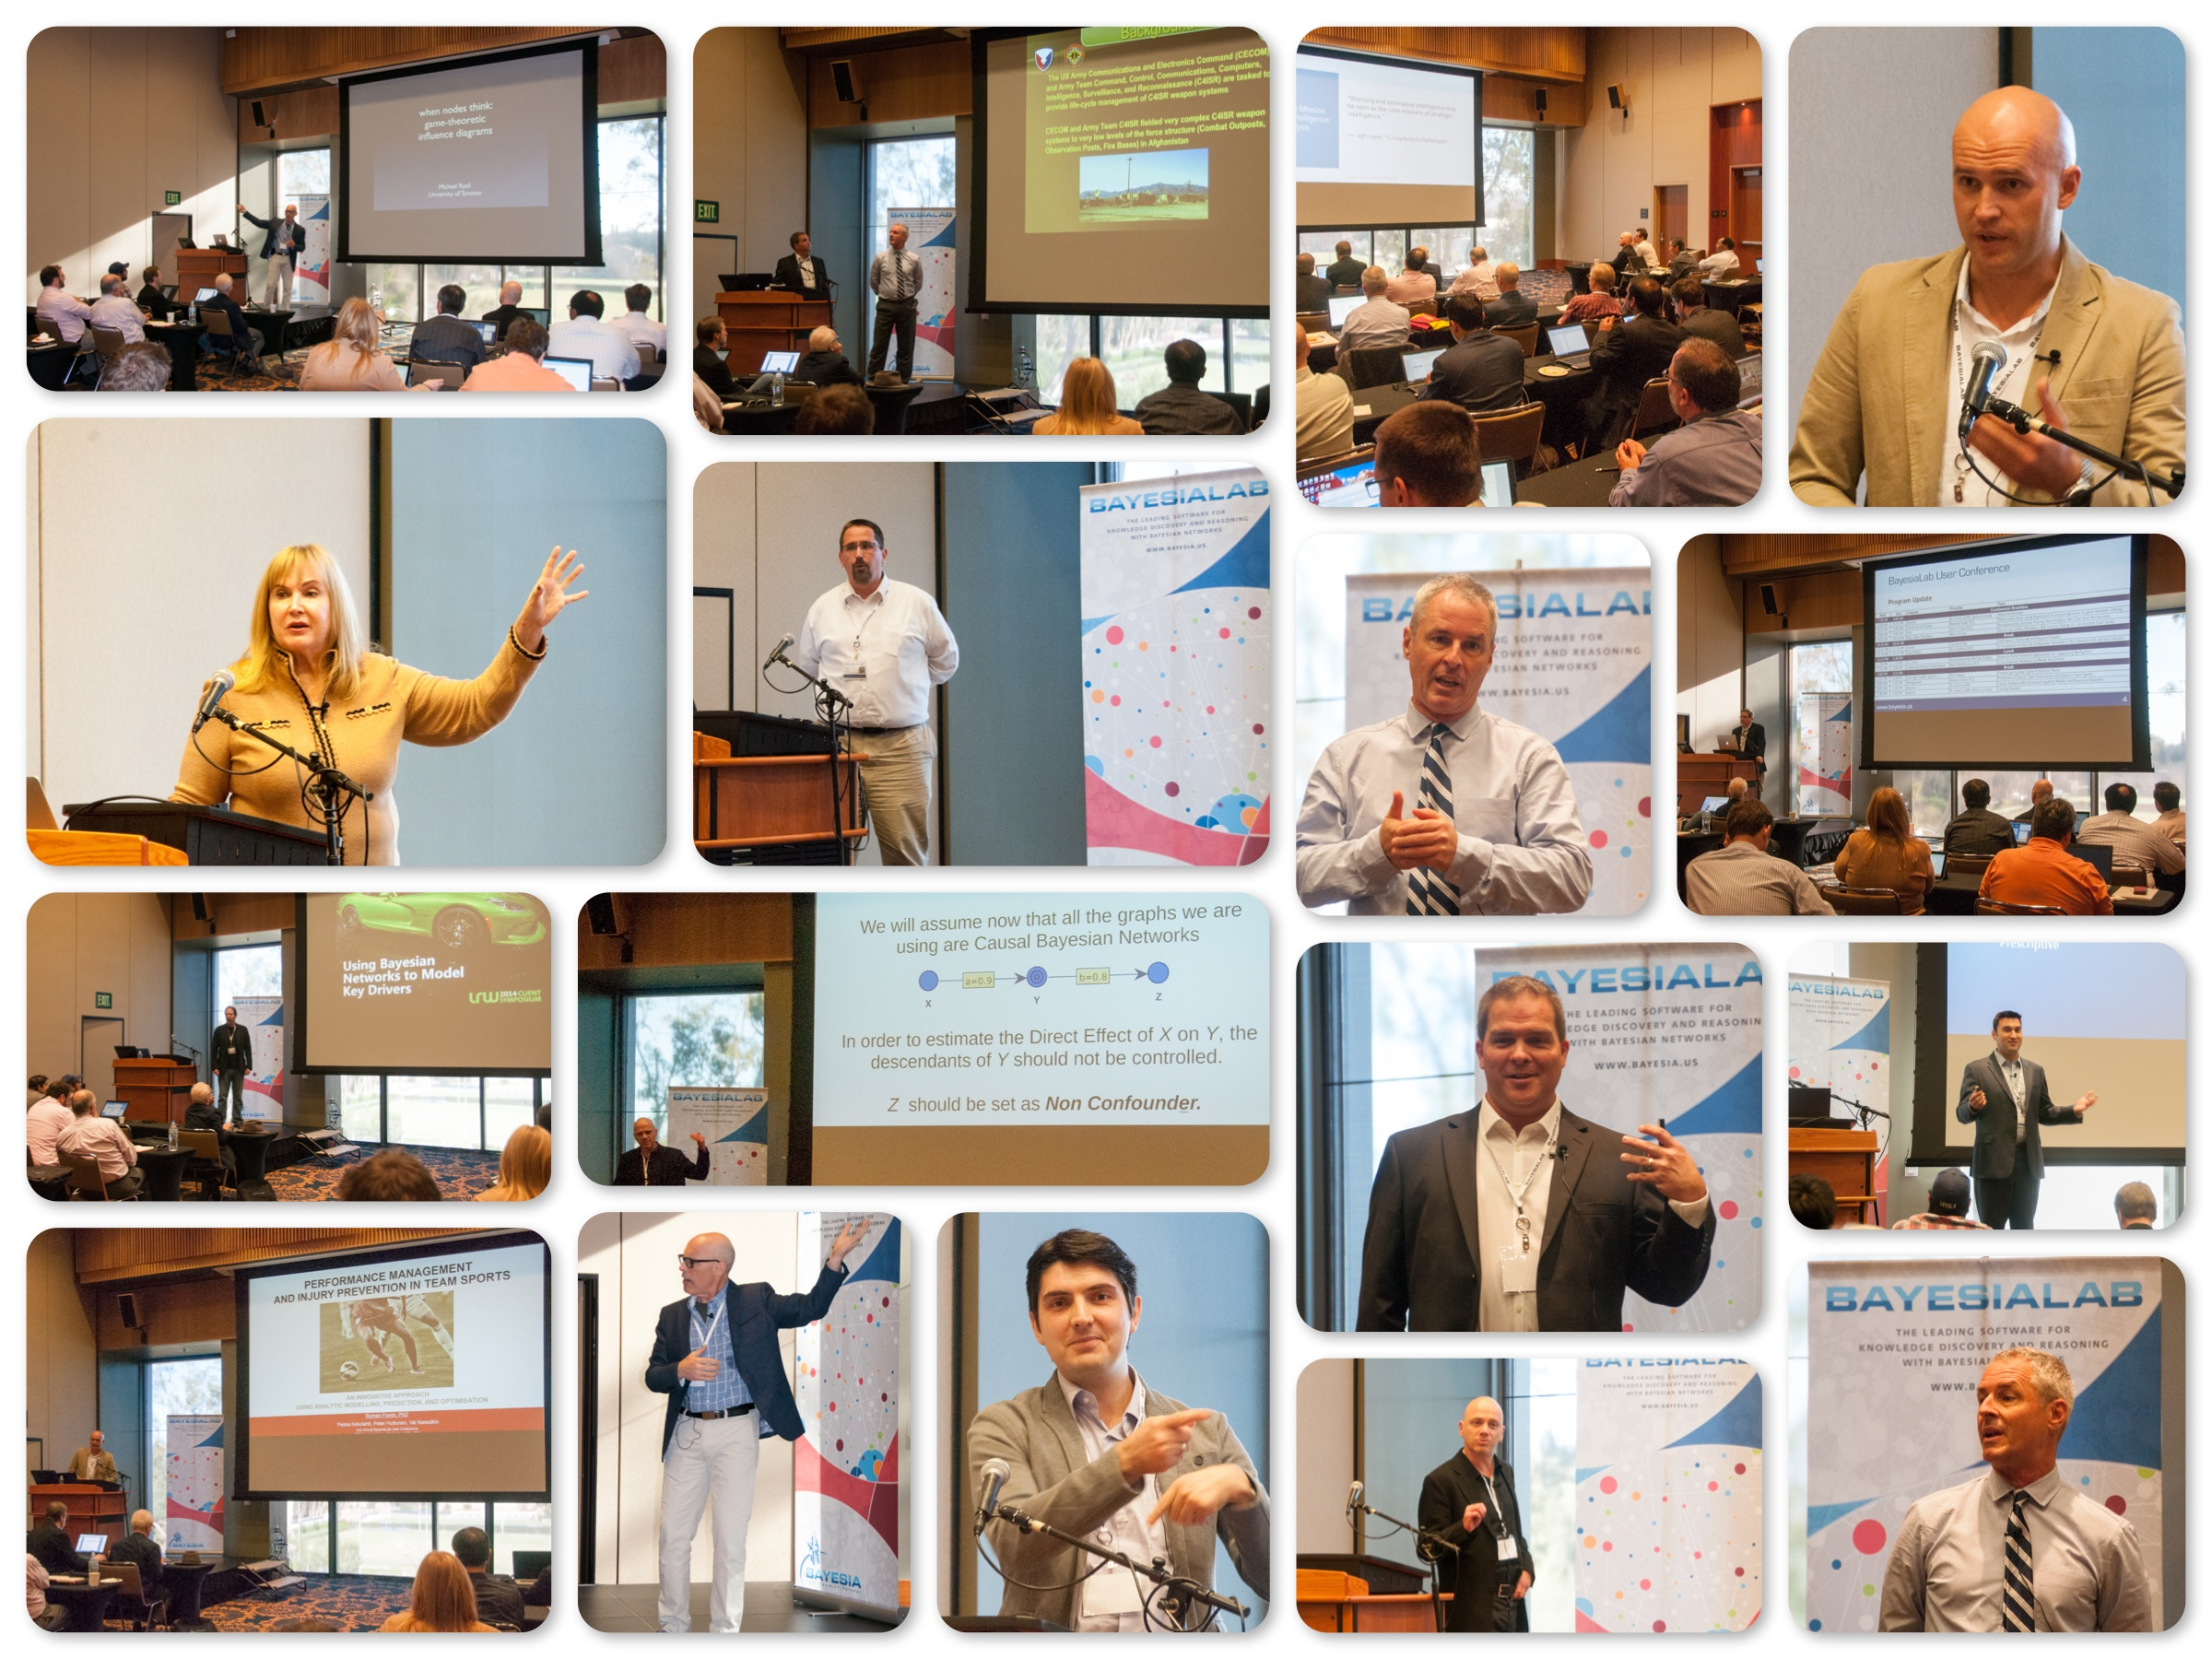 2014-09_BayesiaLab_User_Conference_Collage.jpg